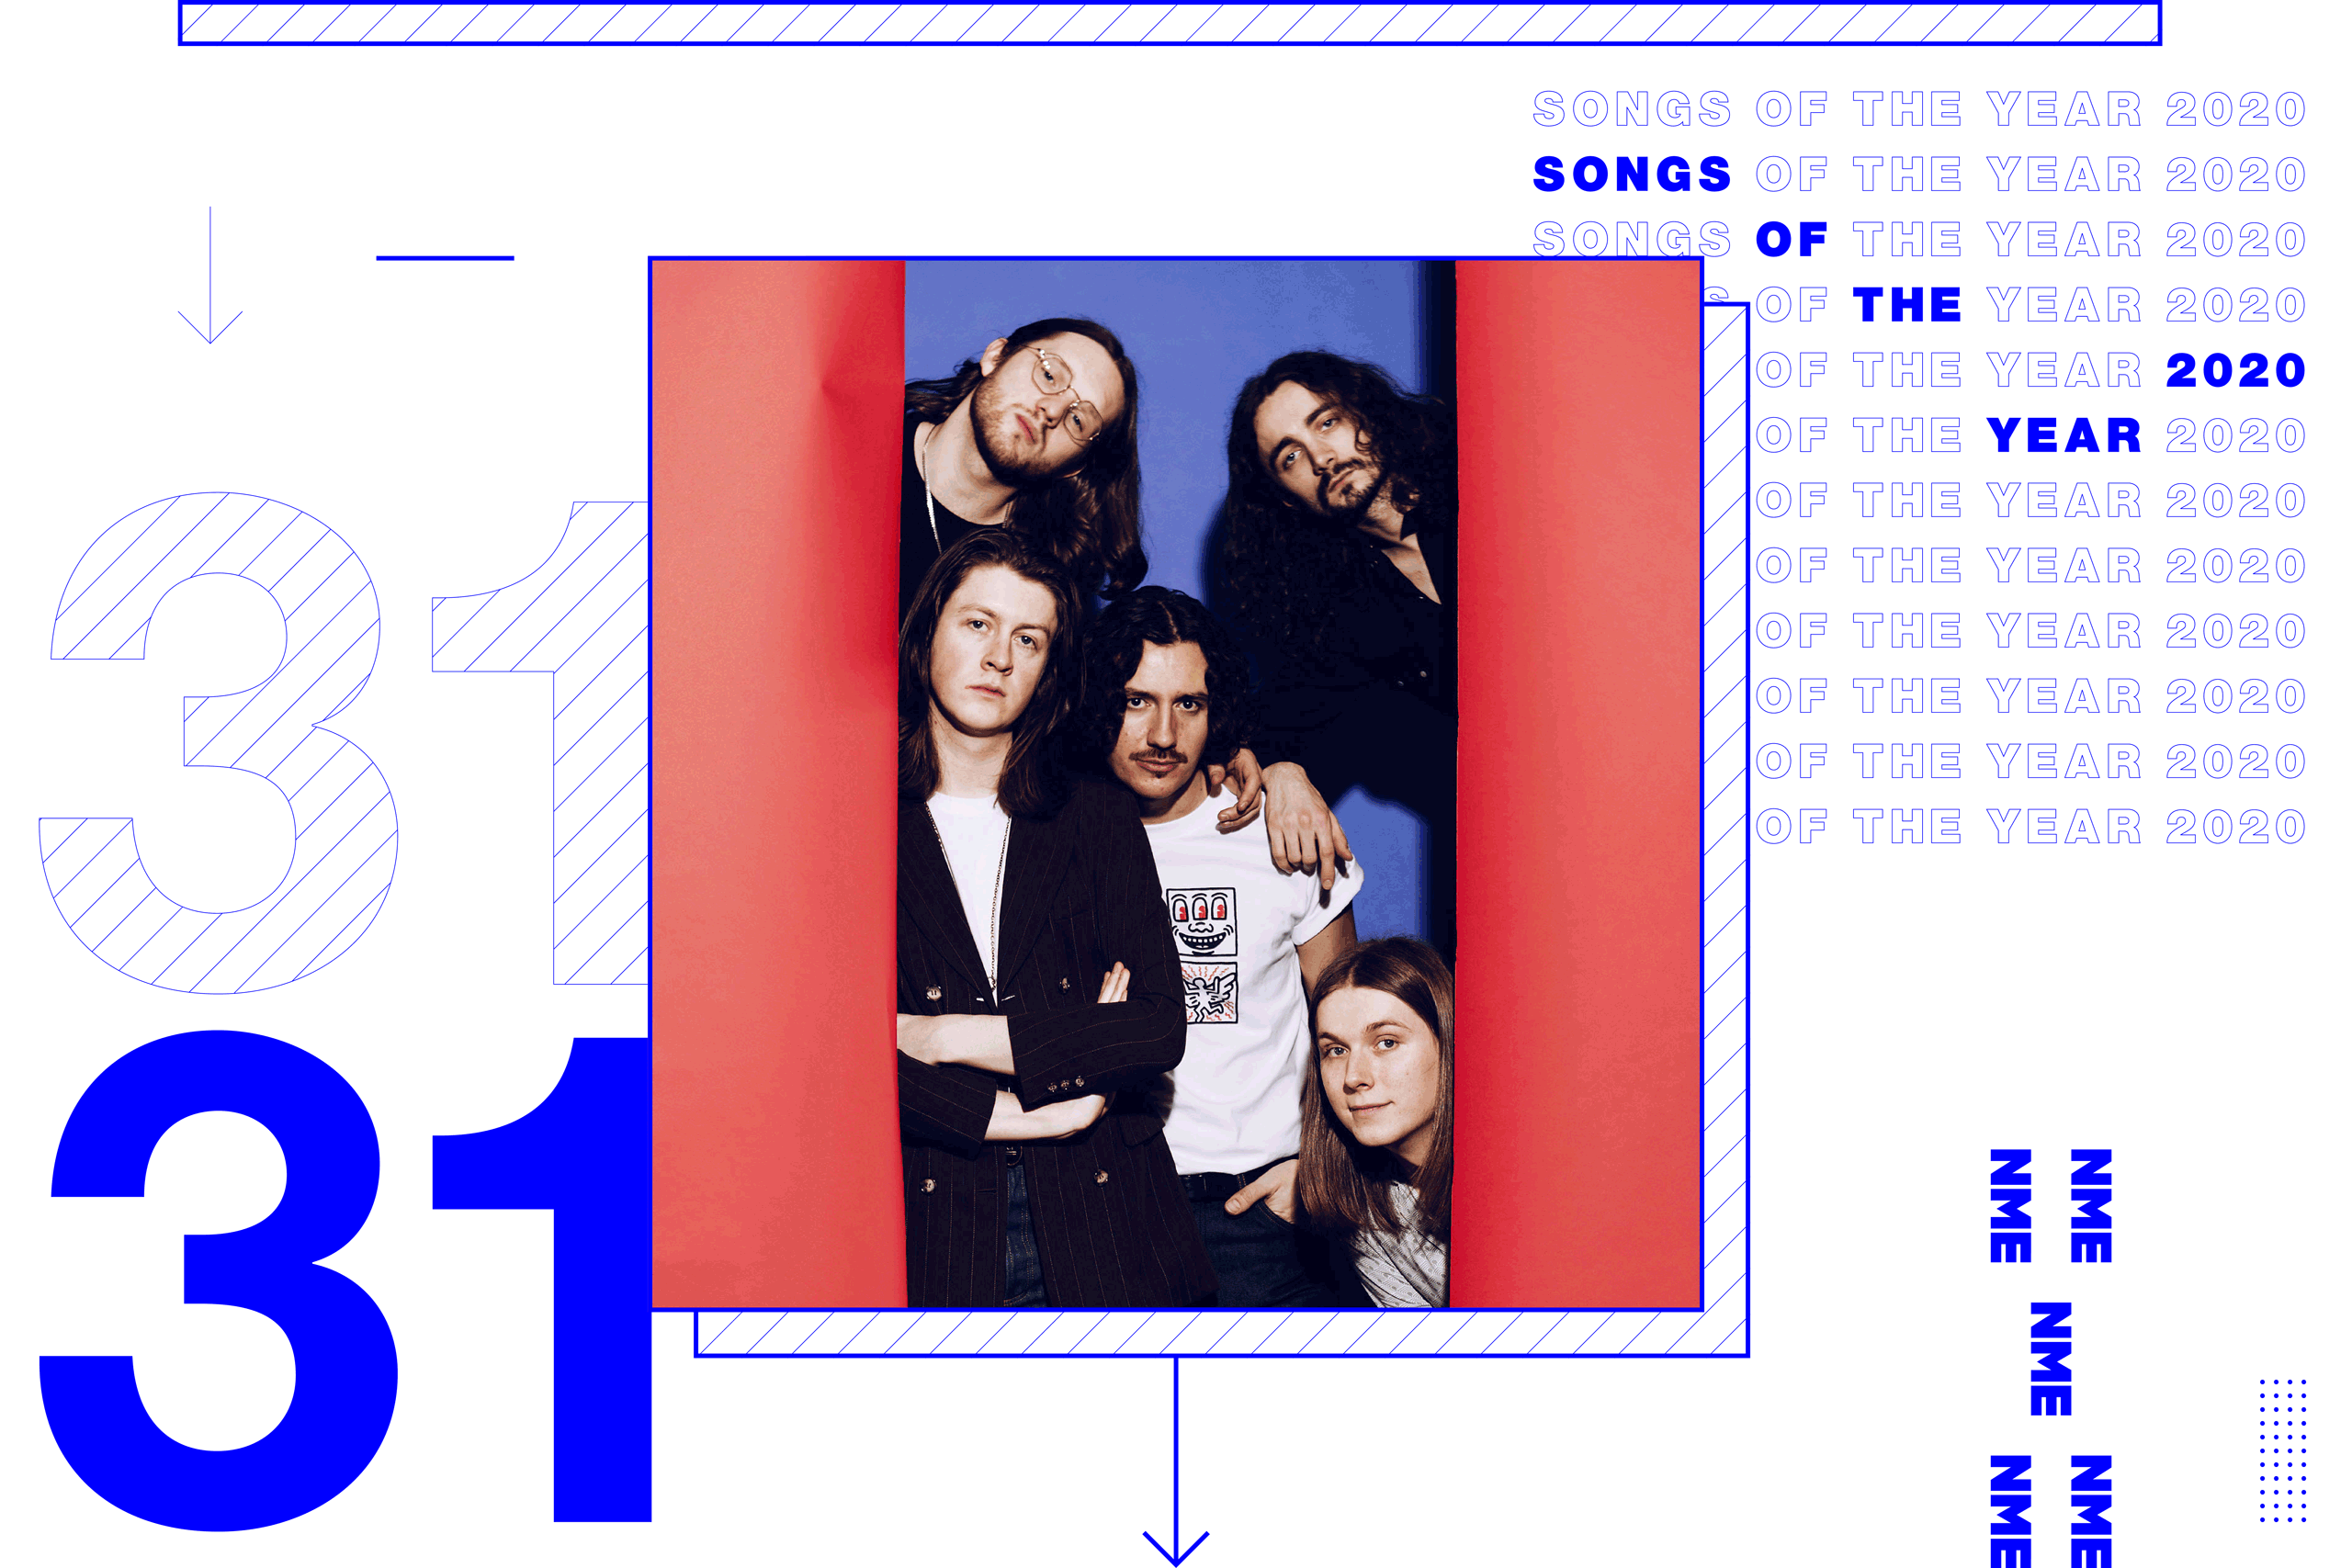 nme songs of the year Blossoms – 'If You Think This Is Real Life'